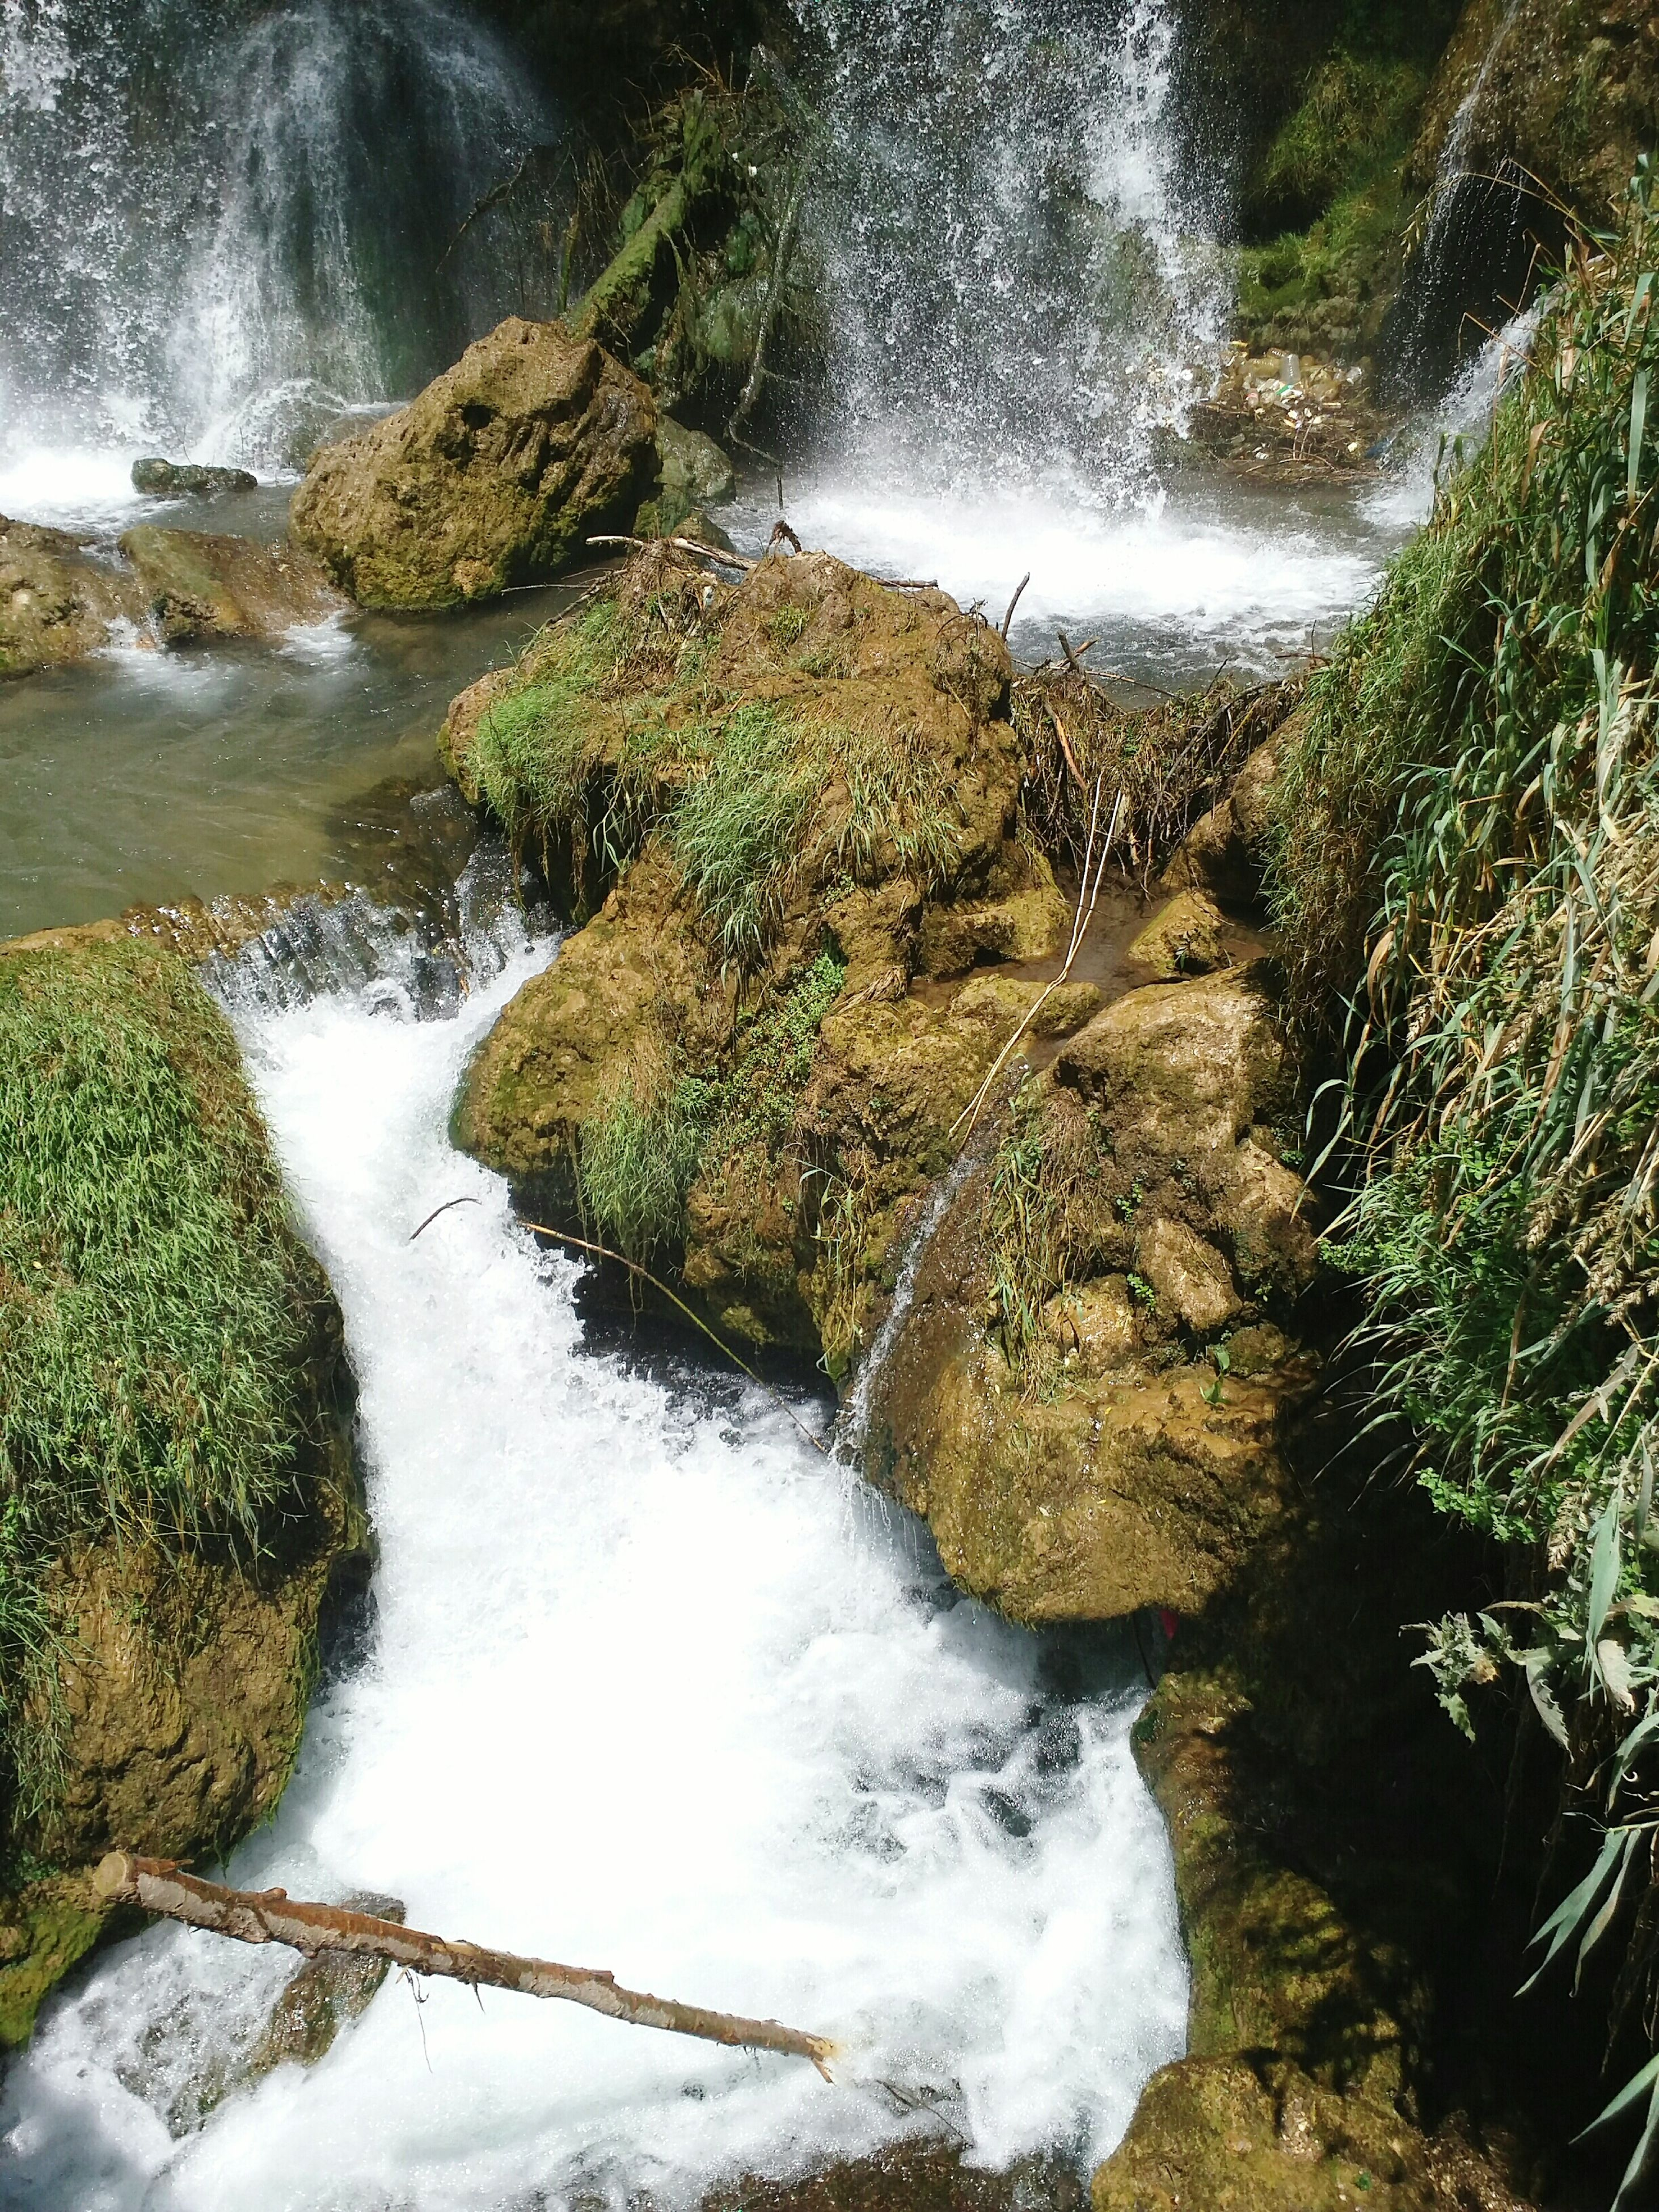 water, flowing water, waterfall, flowing, motion, stream, rock - object, nature, river, beauty in nature, plant, moss, scenics, day, outdoors, green color, no people, growth, rock, tranquility, idyllic, rock formation, tranquil scene, non-urban scene, non urban scene, grass, remote